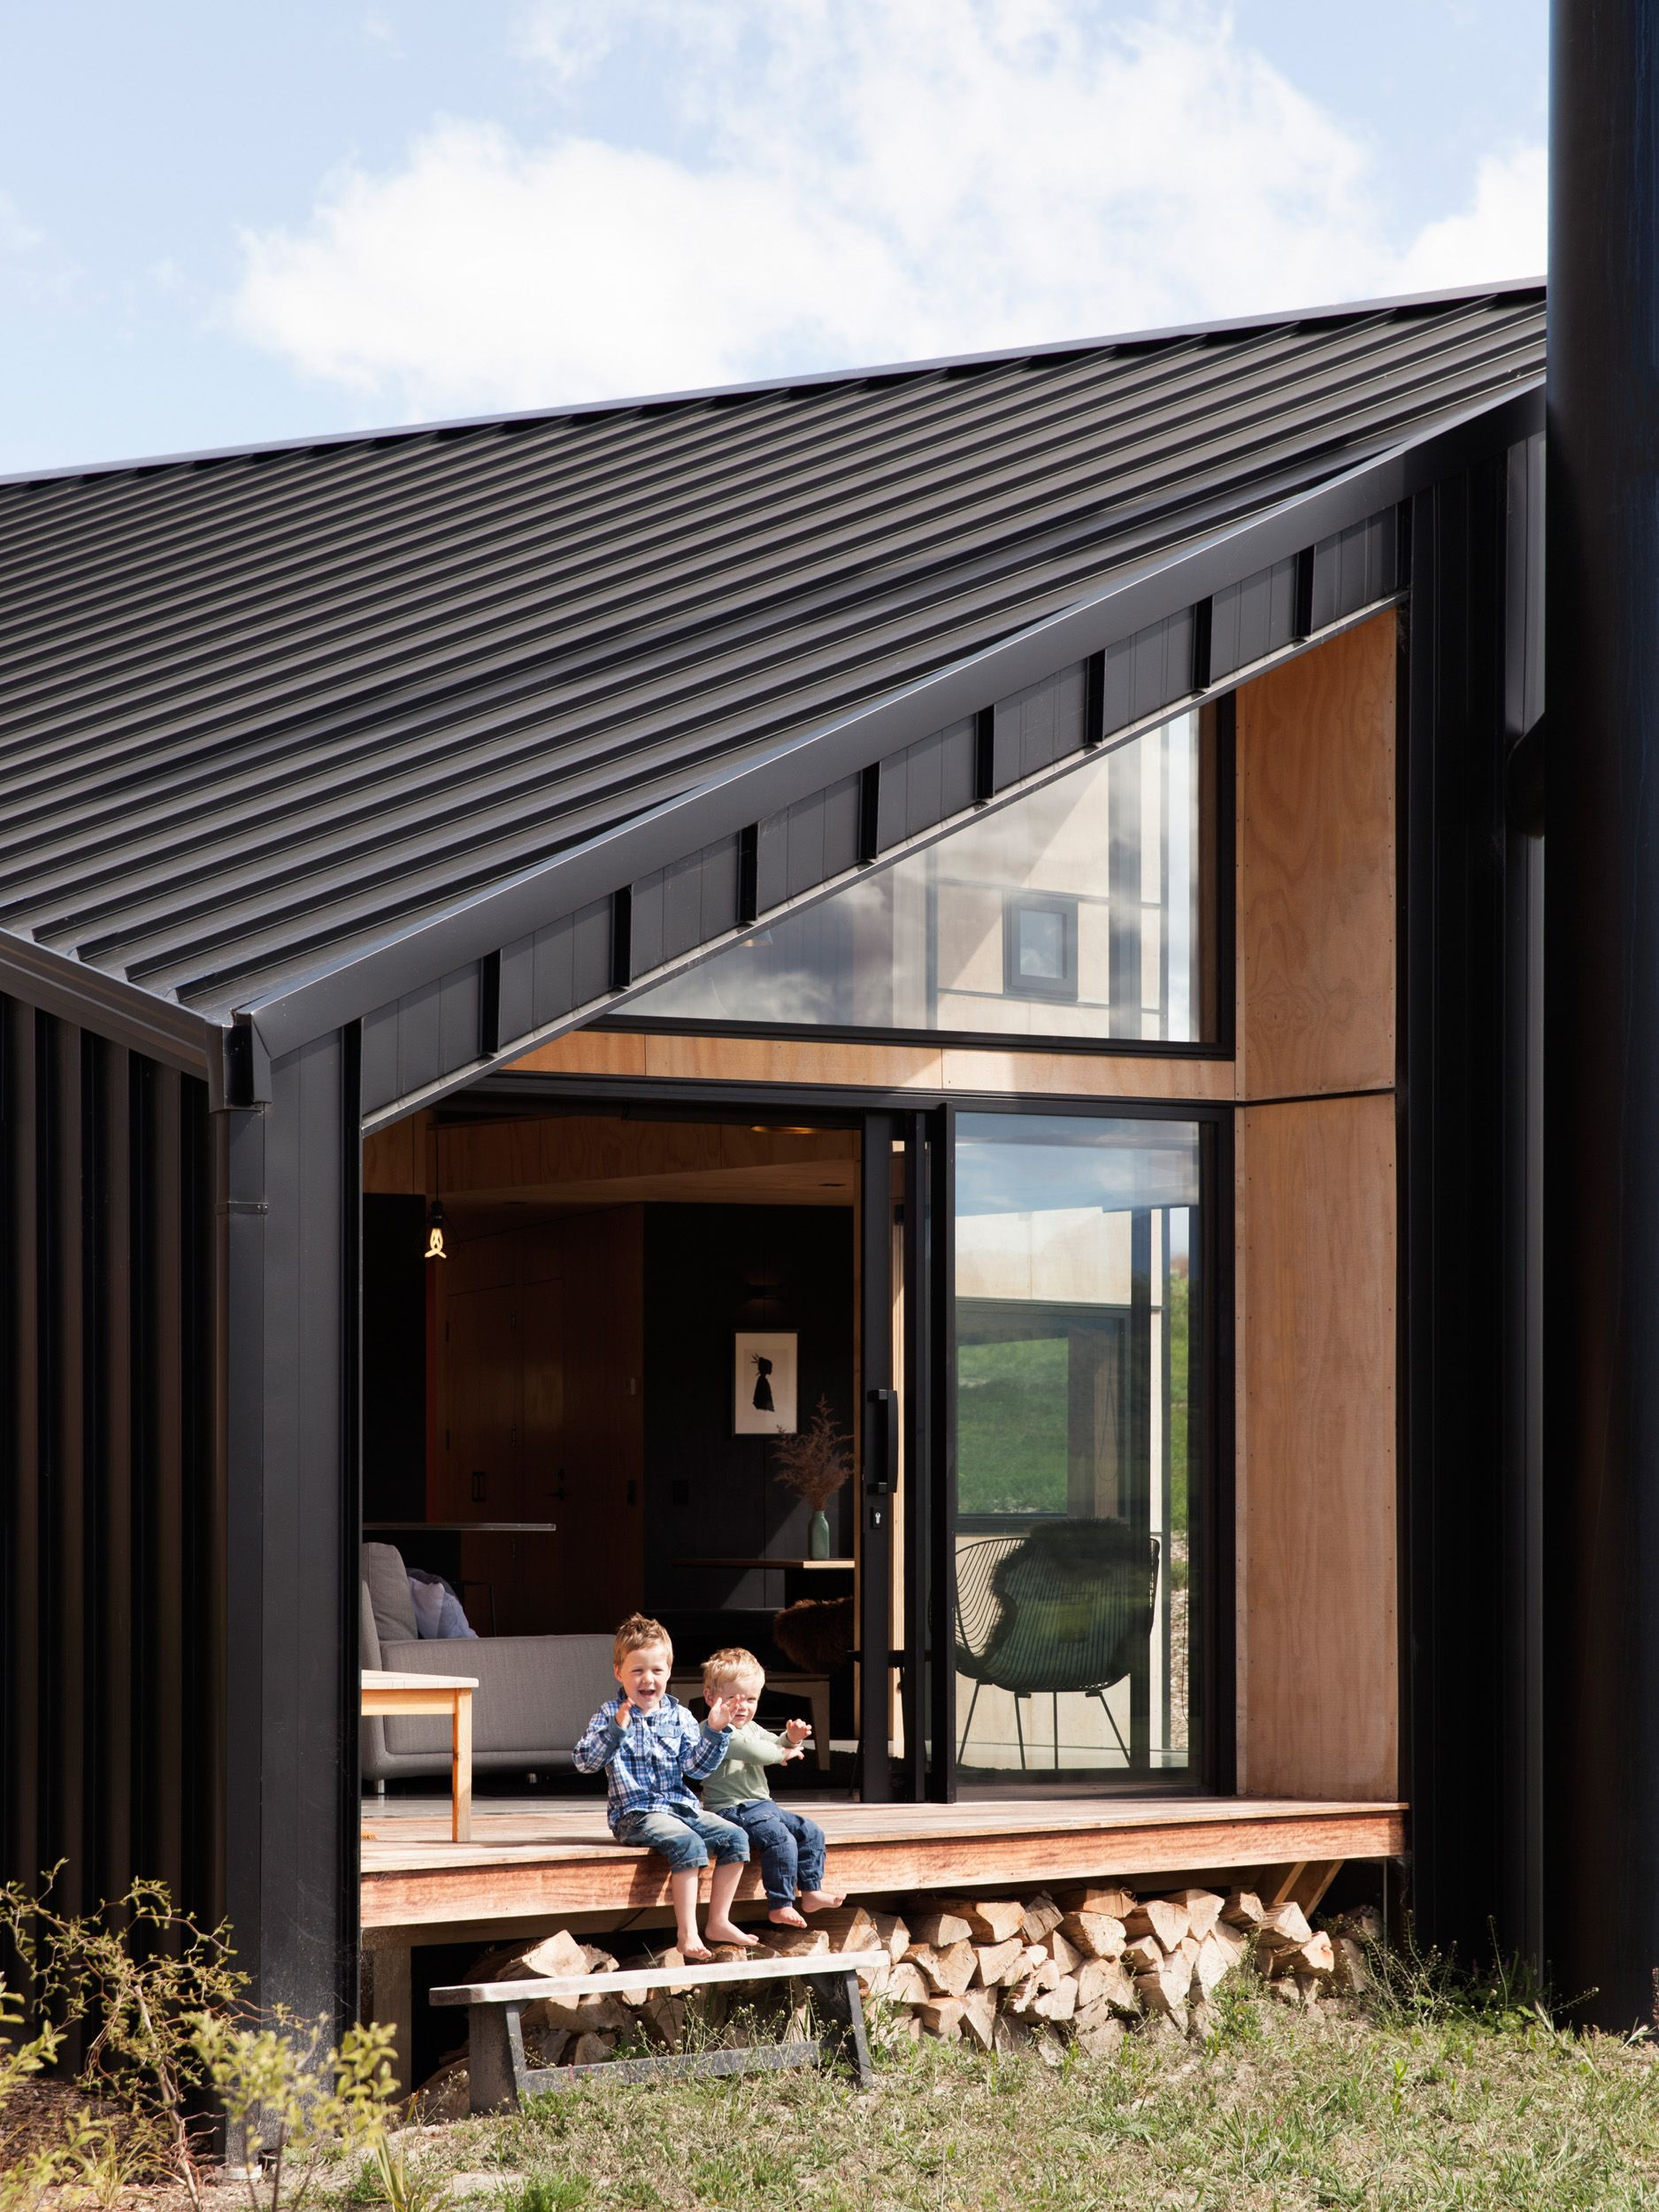 New Zealand's best small home | House cladding, House ...